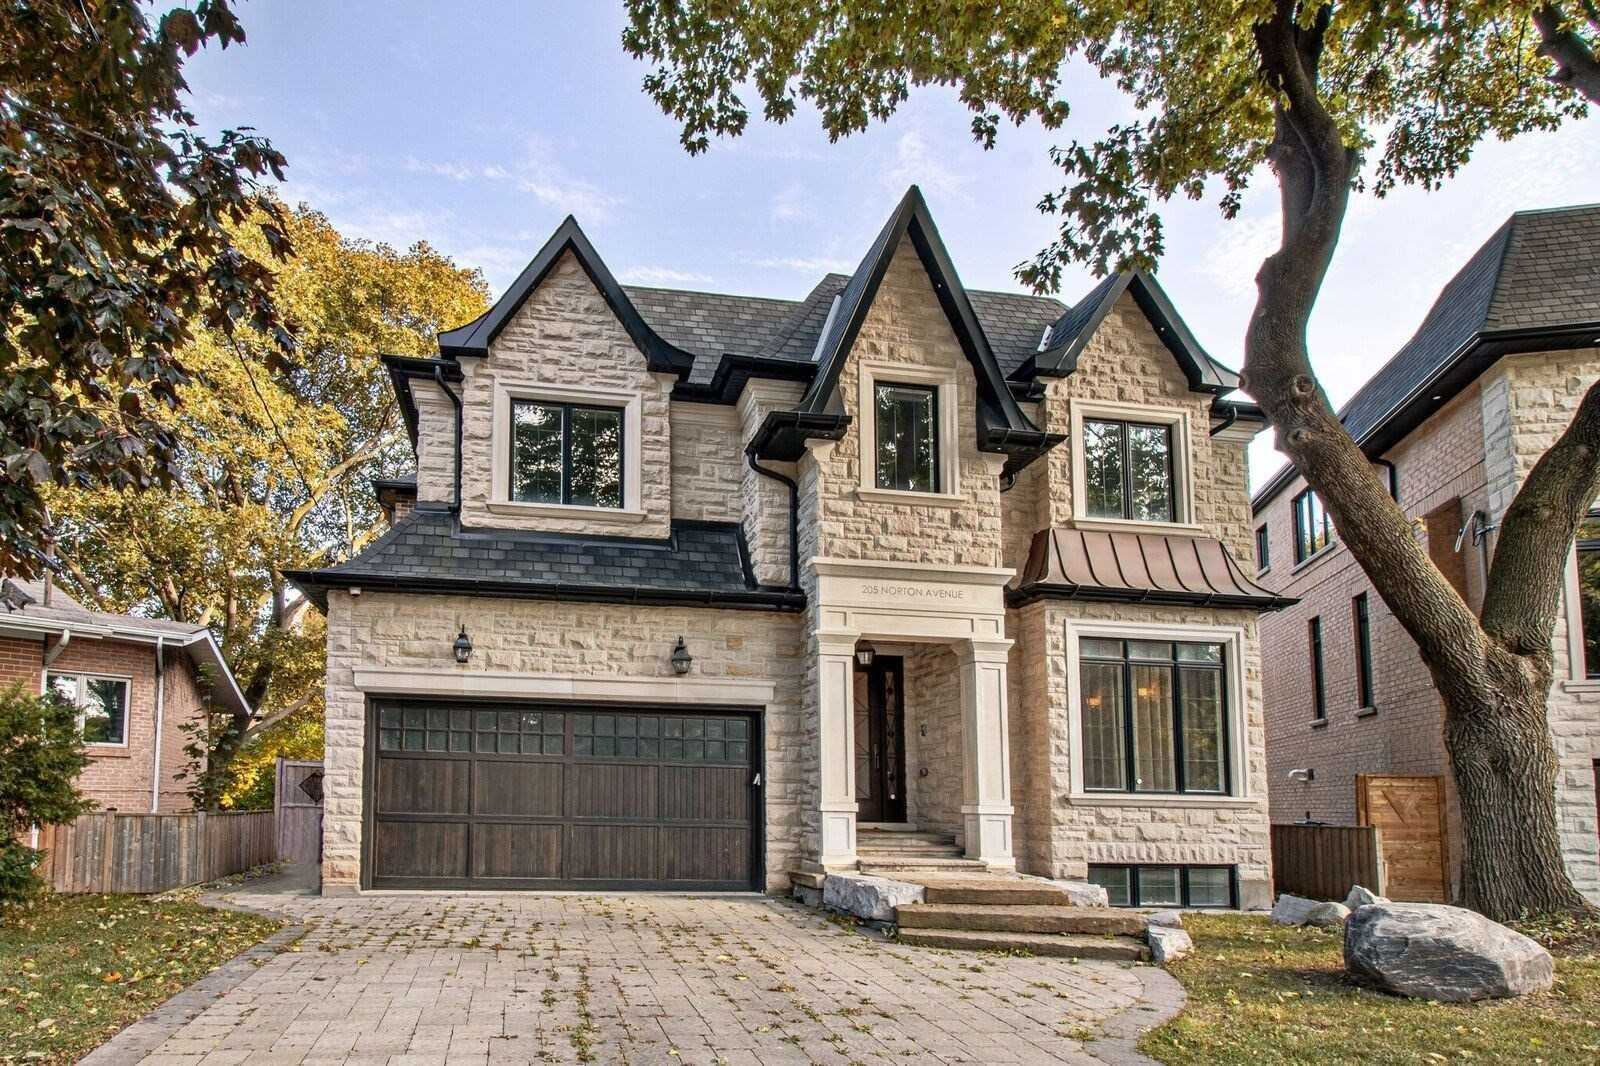 For Sale: 205 Norton Avenue, Toronto, ON   5 Bed, 7 Bath House for $3599800.00. See 1 photos!